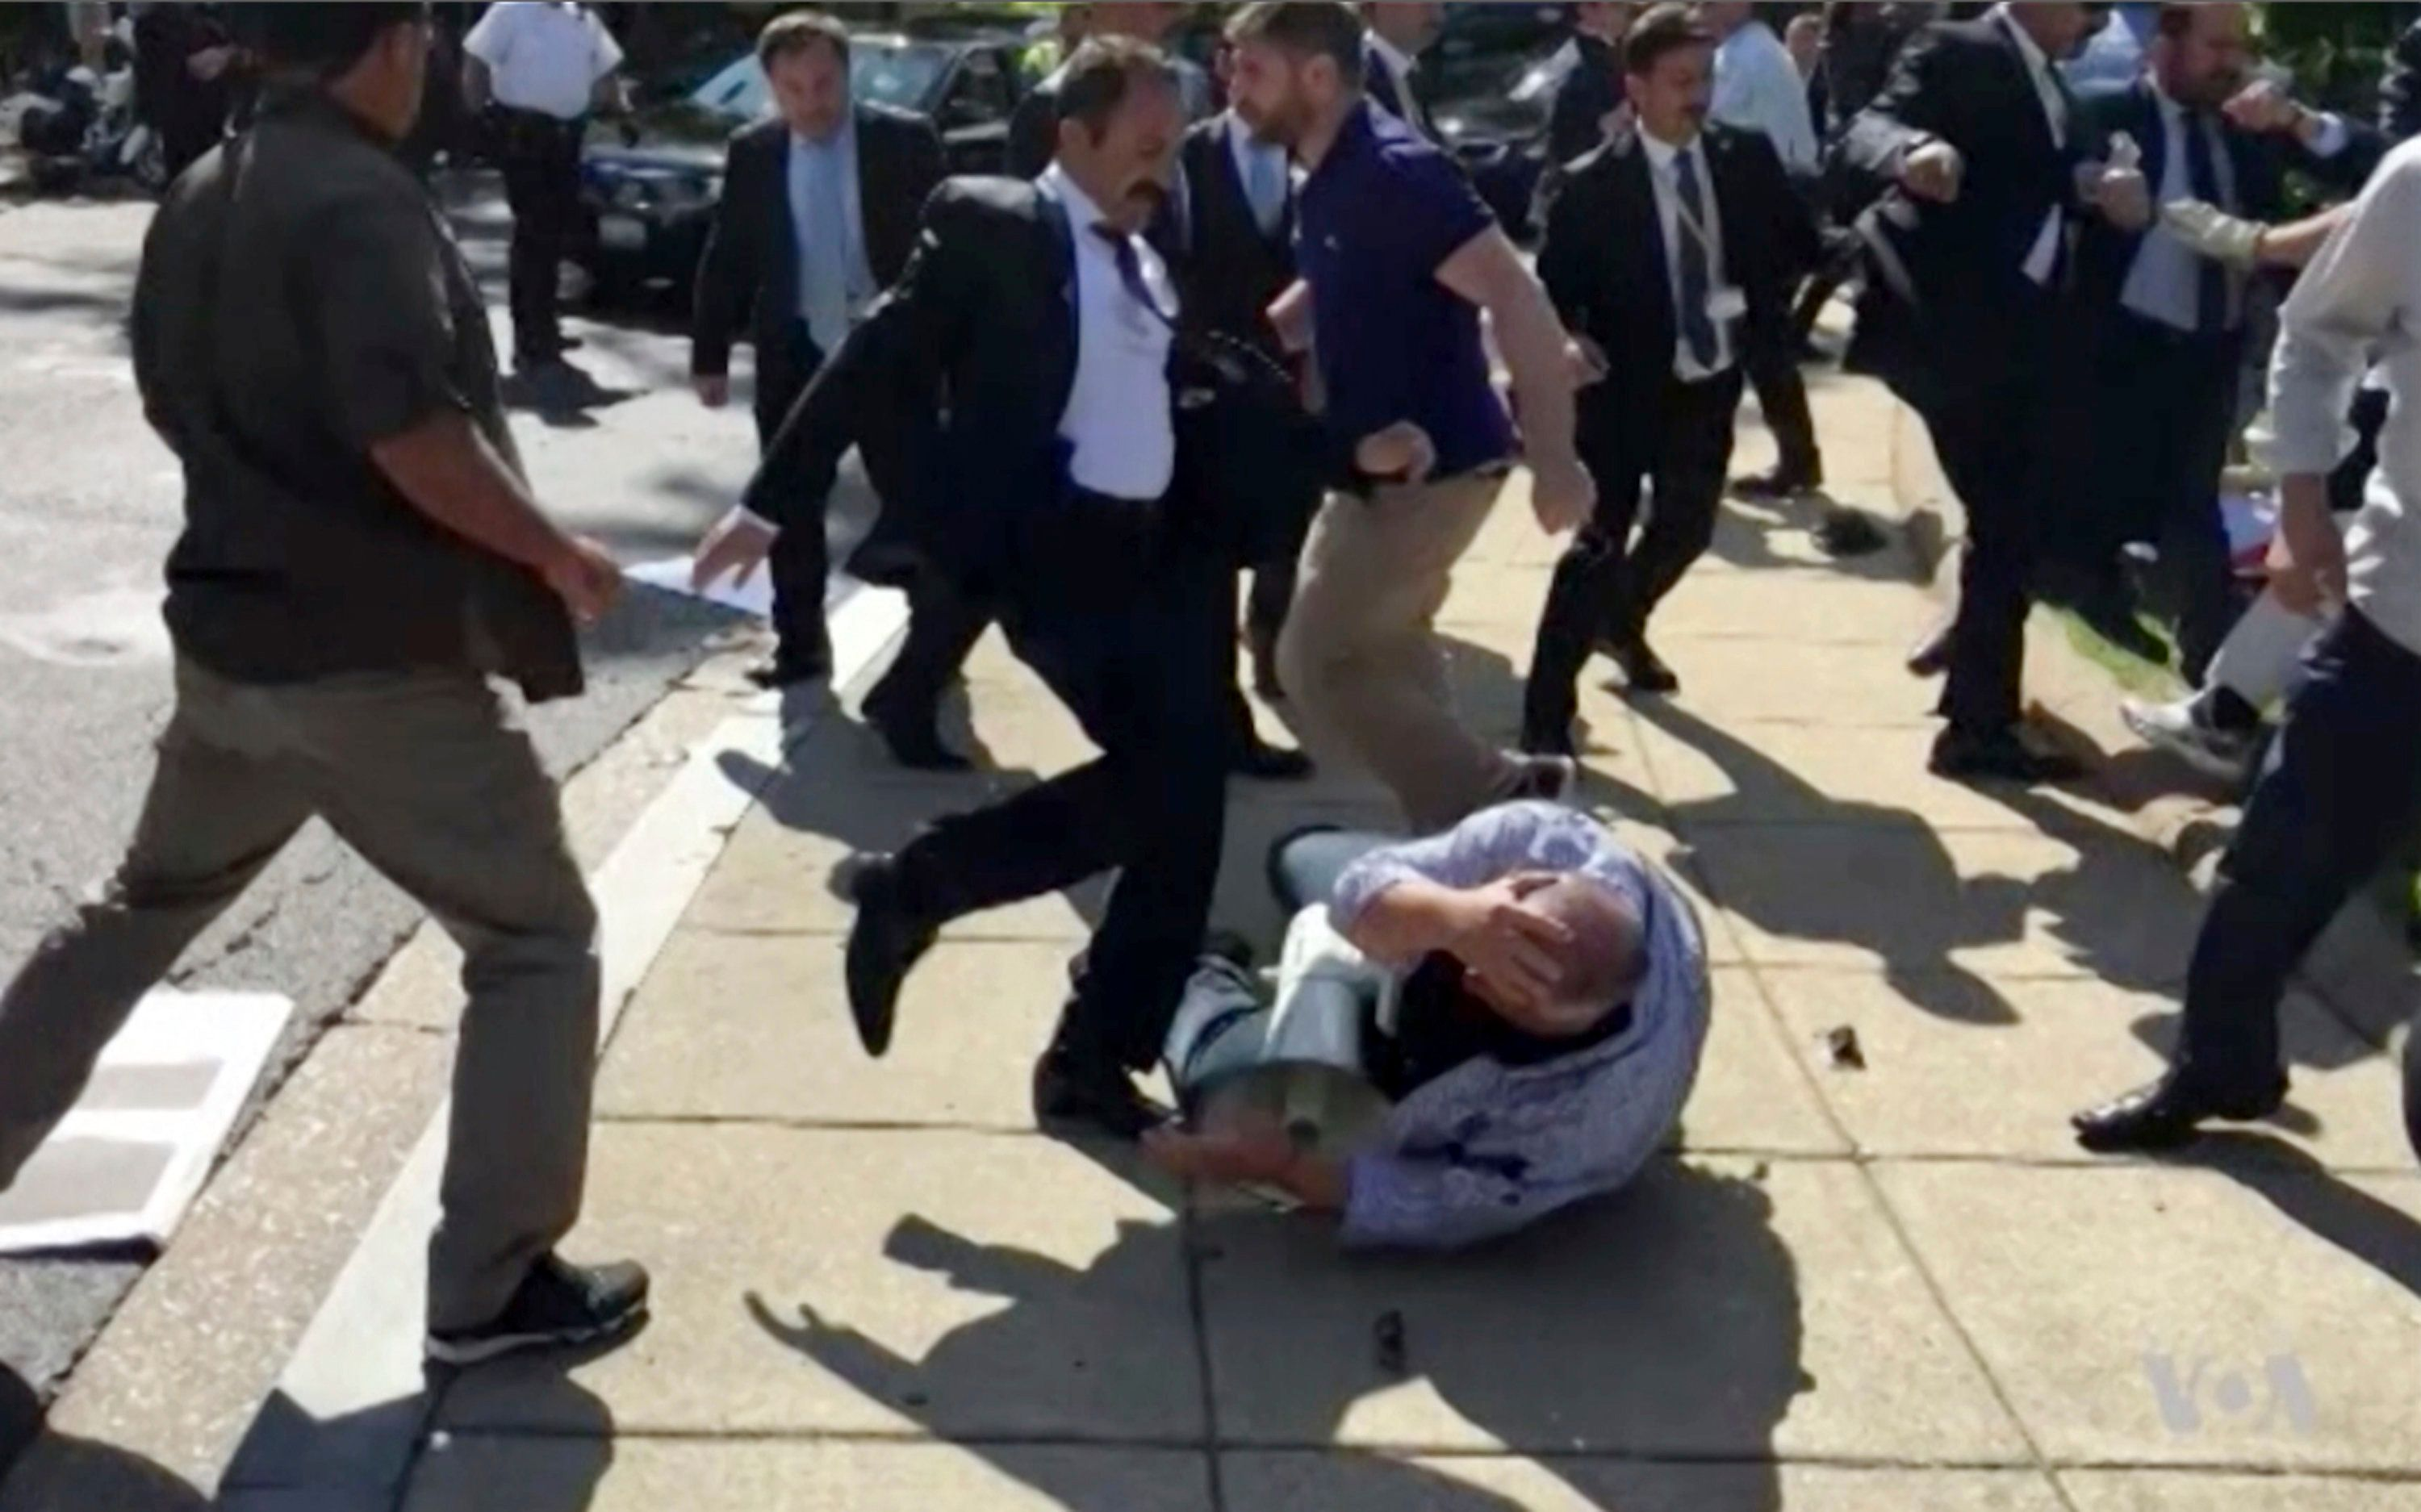 Attacker is seen kicking an American protester in the face in Washington last month